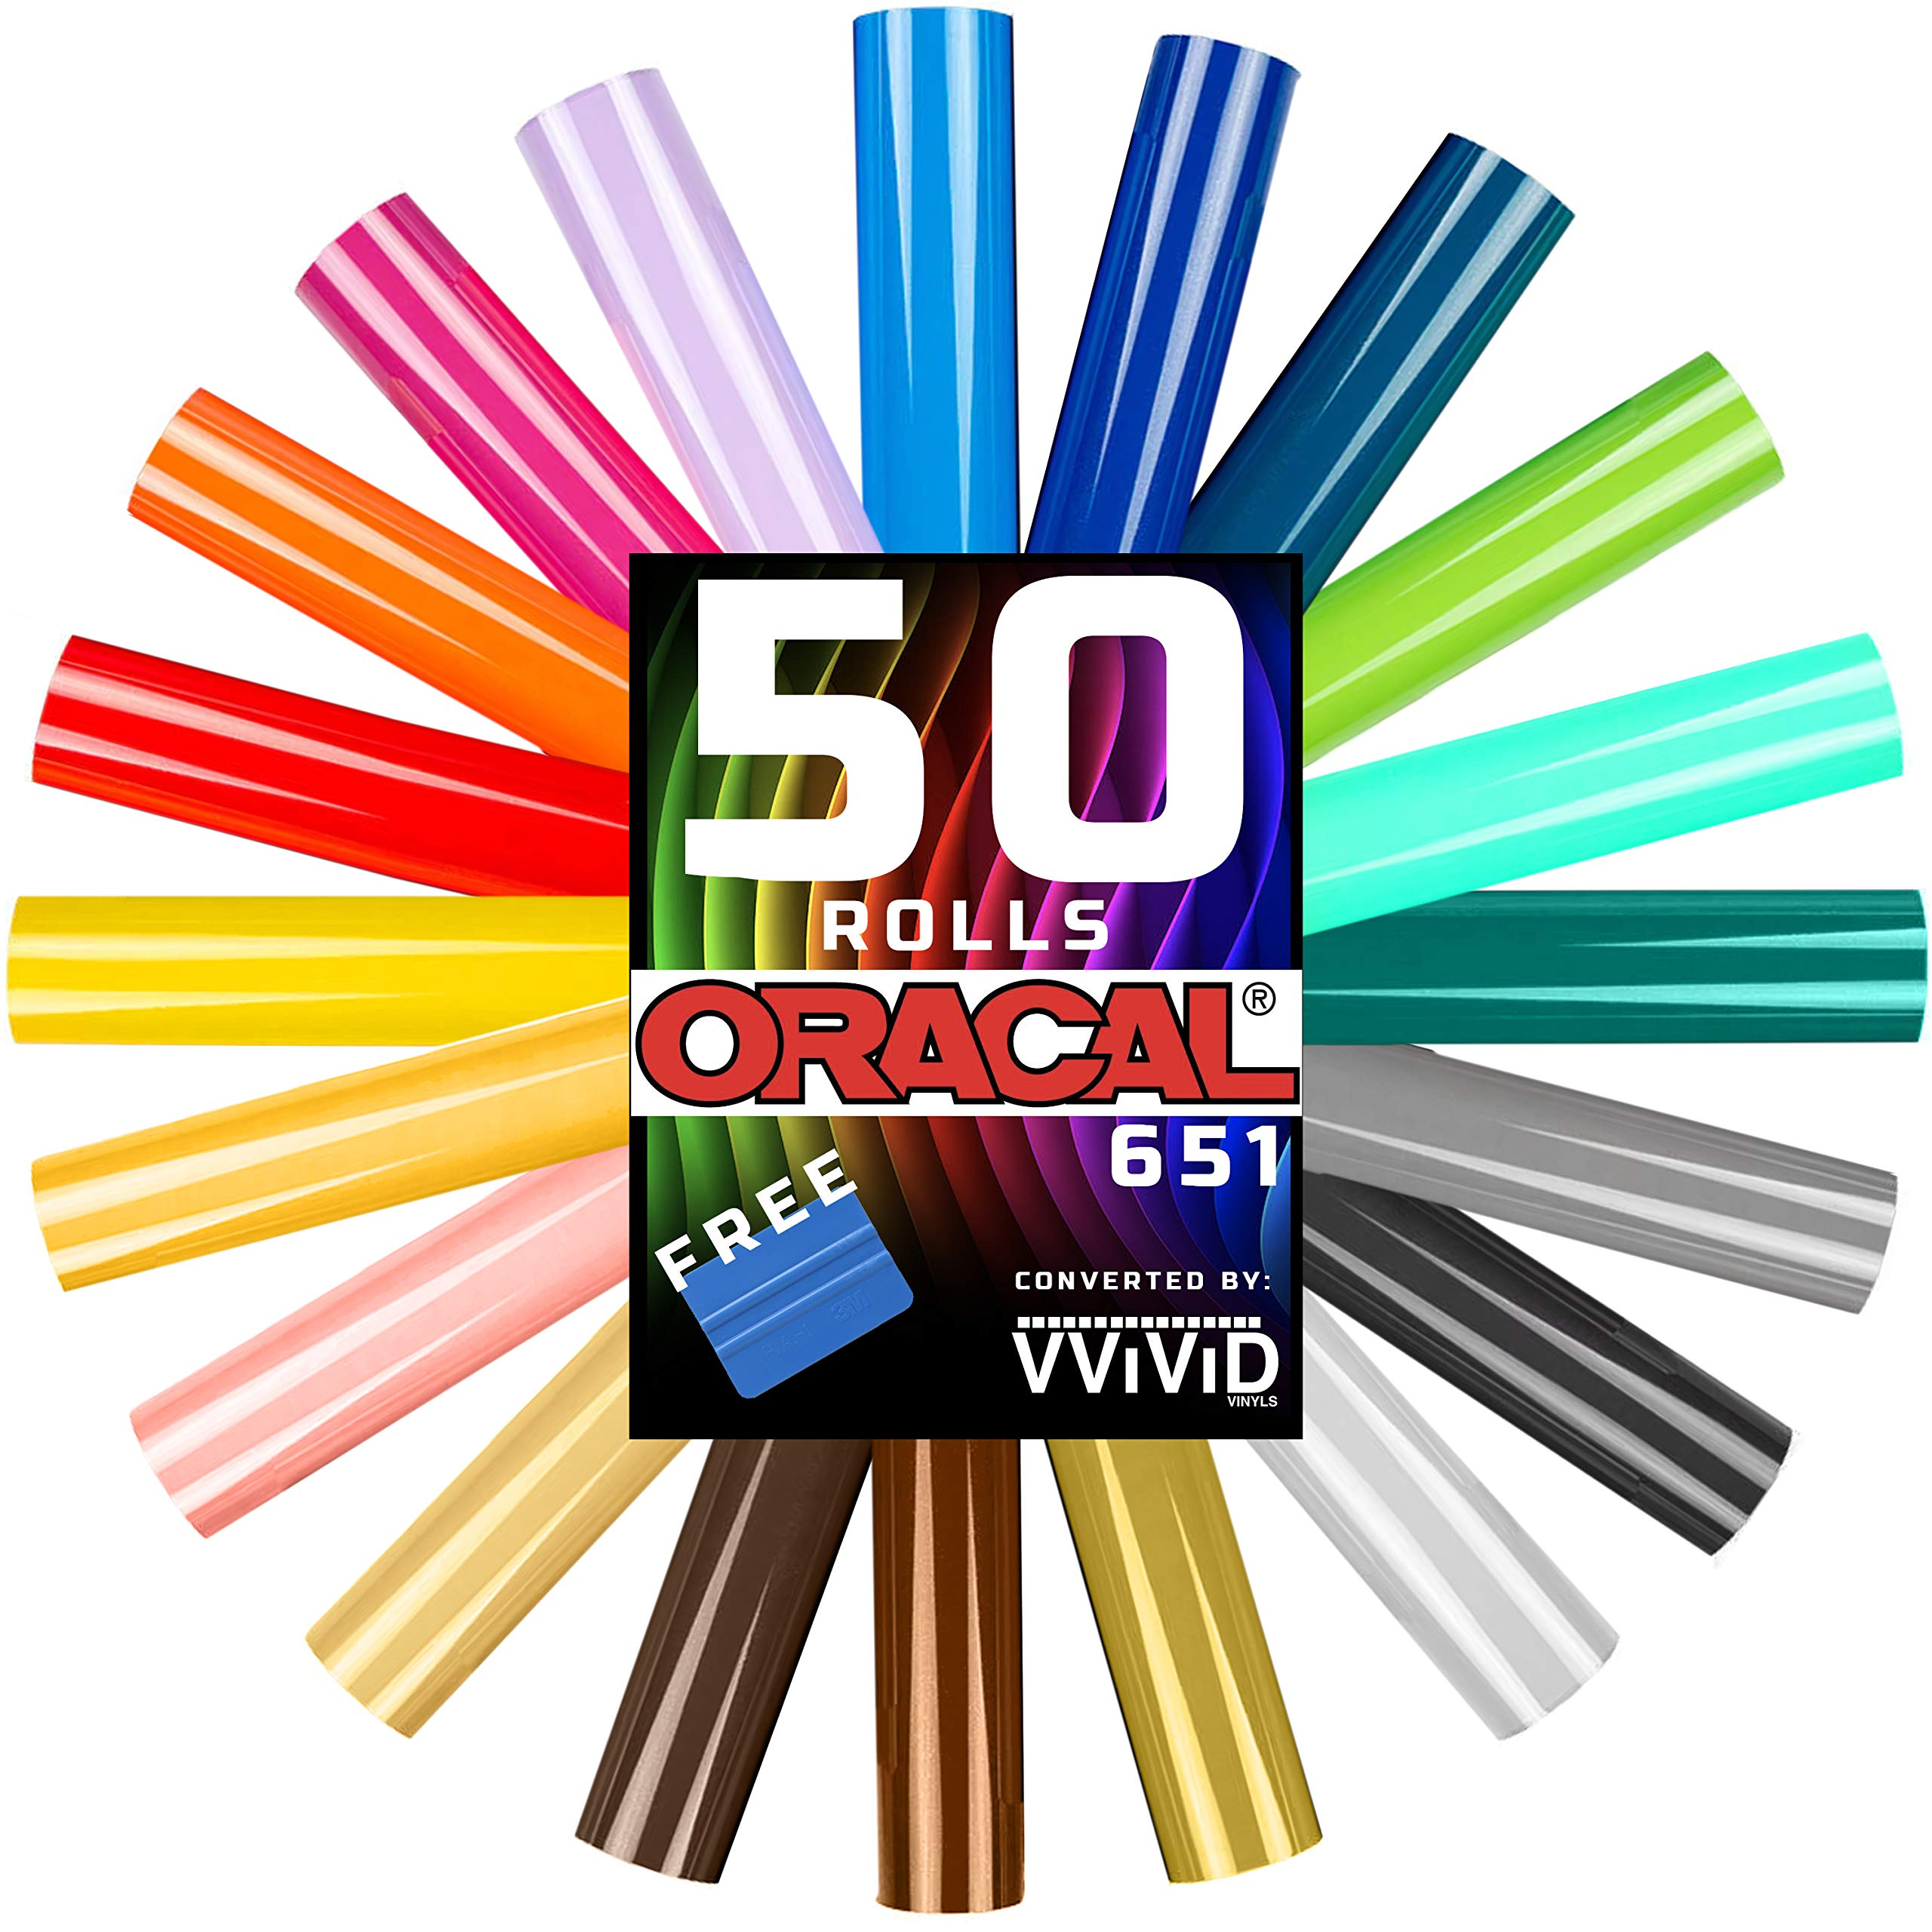 Oracal 651 Choose Your Own Colors roll Pack 12'' x 60'' per roll w/Squeegee (50 Rolls)